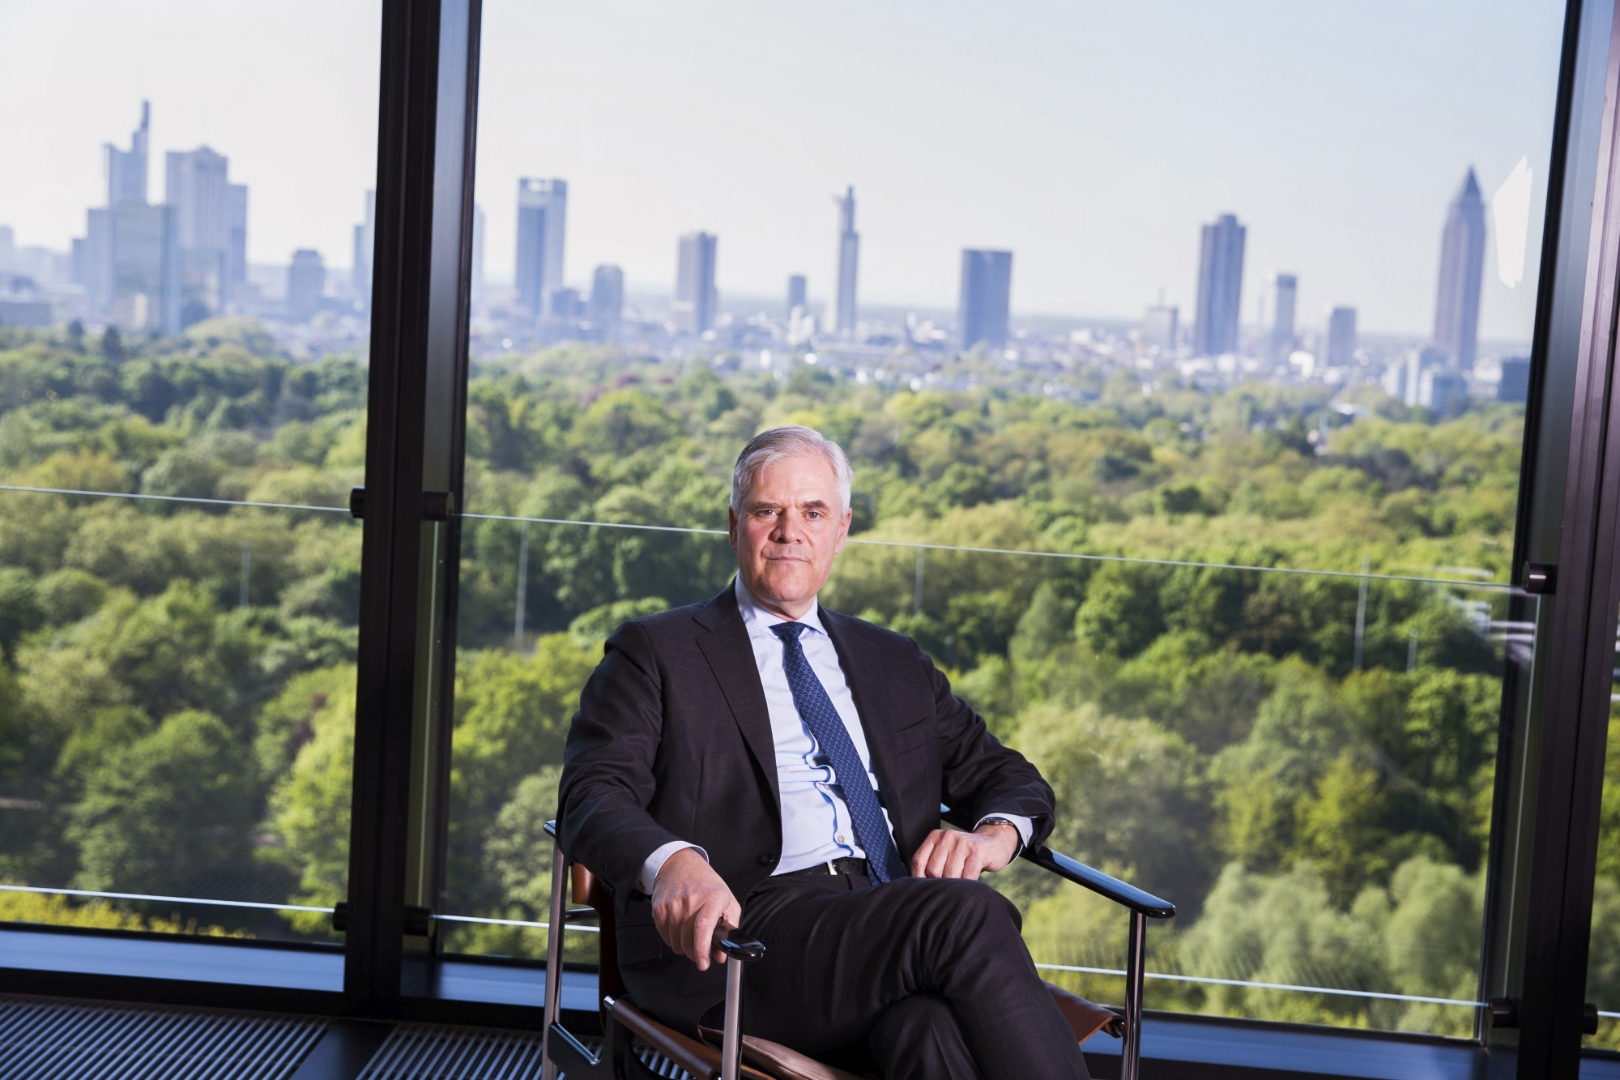 Andreas Raymond Dombret, Bankmanager